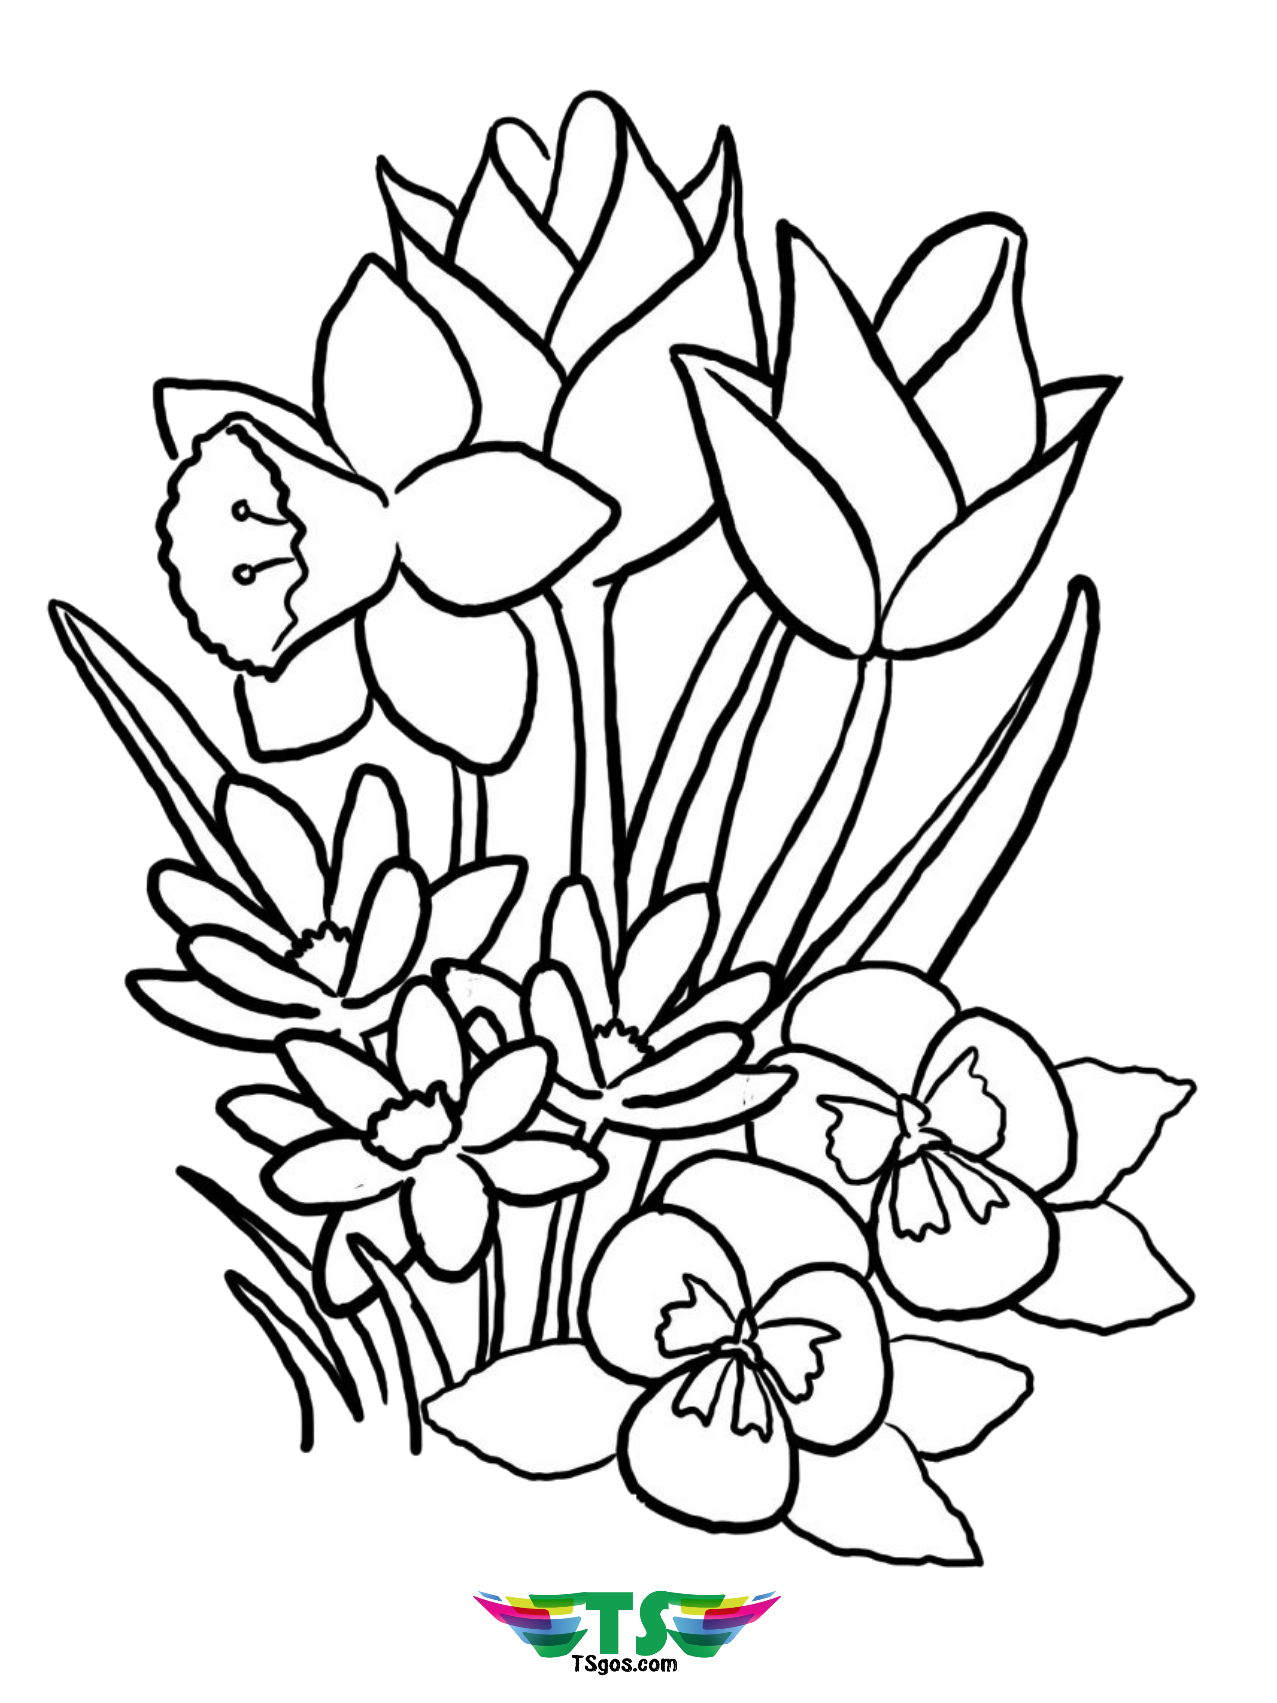 flowers coloring pages printable coloring pages of flowers 2 coloring pages to print flowers coloring printable pages